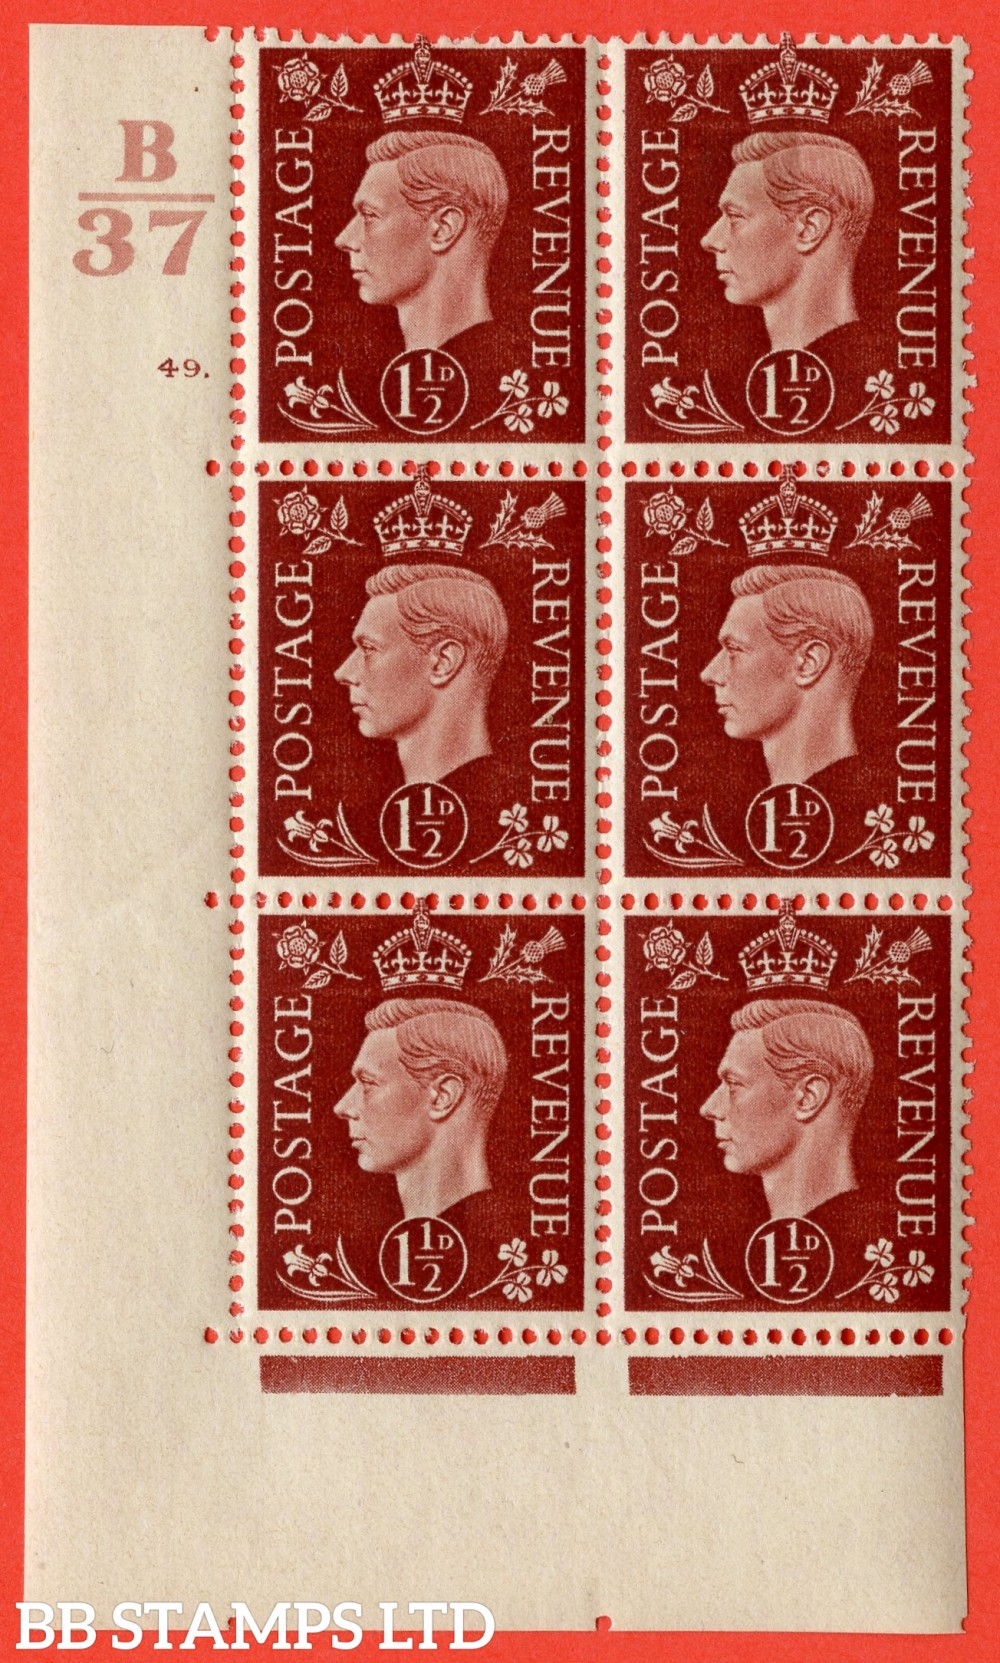 """SG. 464. Q7. 1½d Red-Brown. A fine lightly mounted mint """" Control B37 cylinder 49 dot """" control block of 6 with perf type 5 E/I. with marginal rule."""